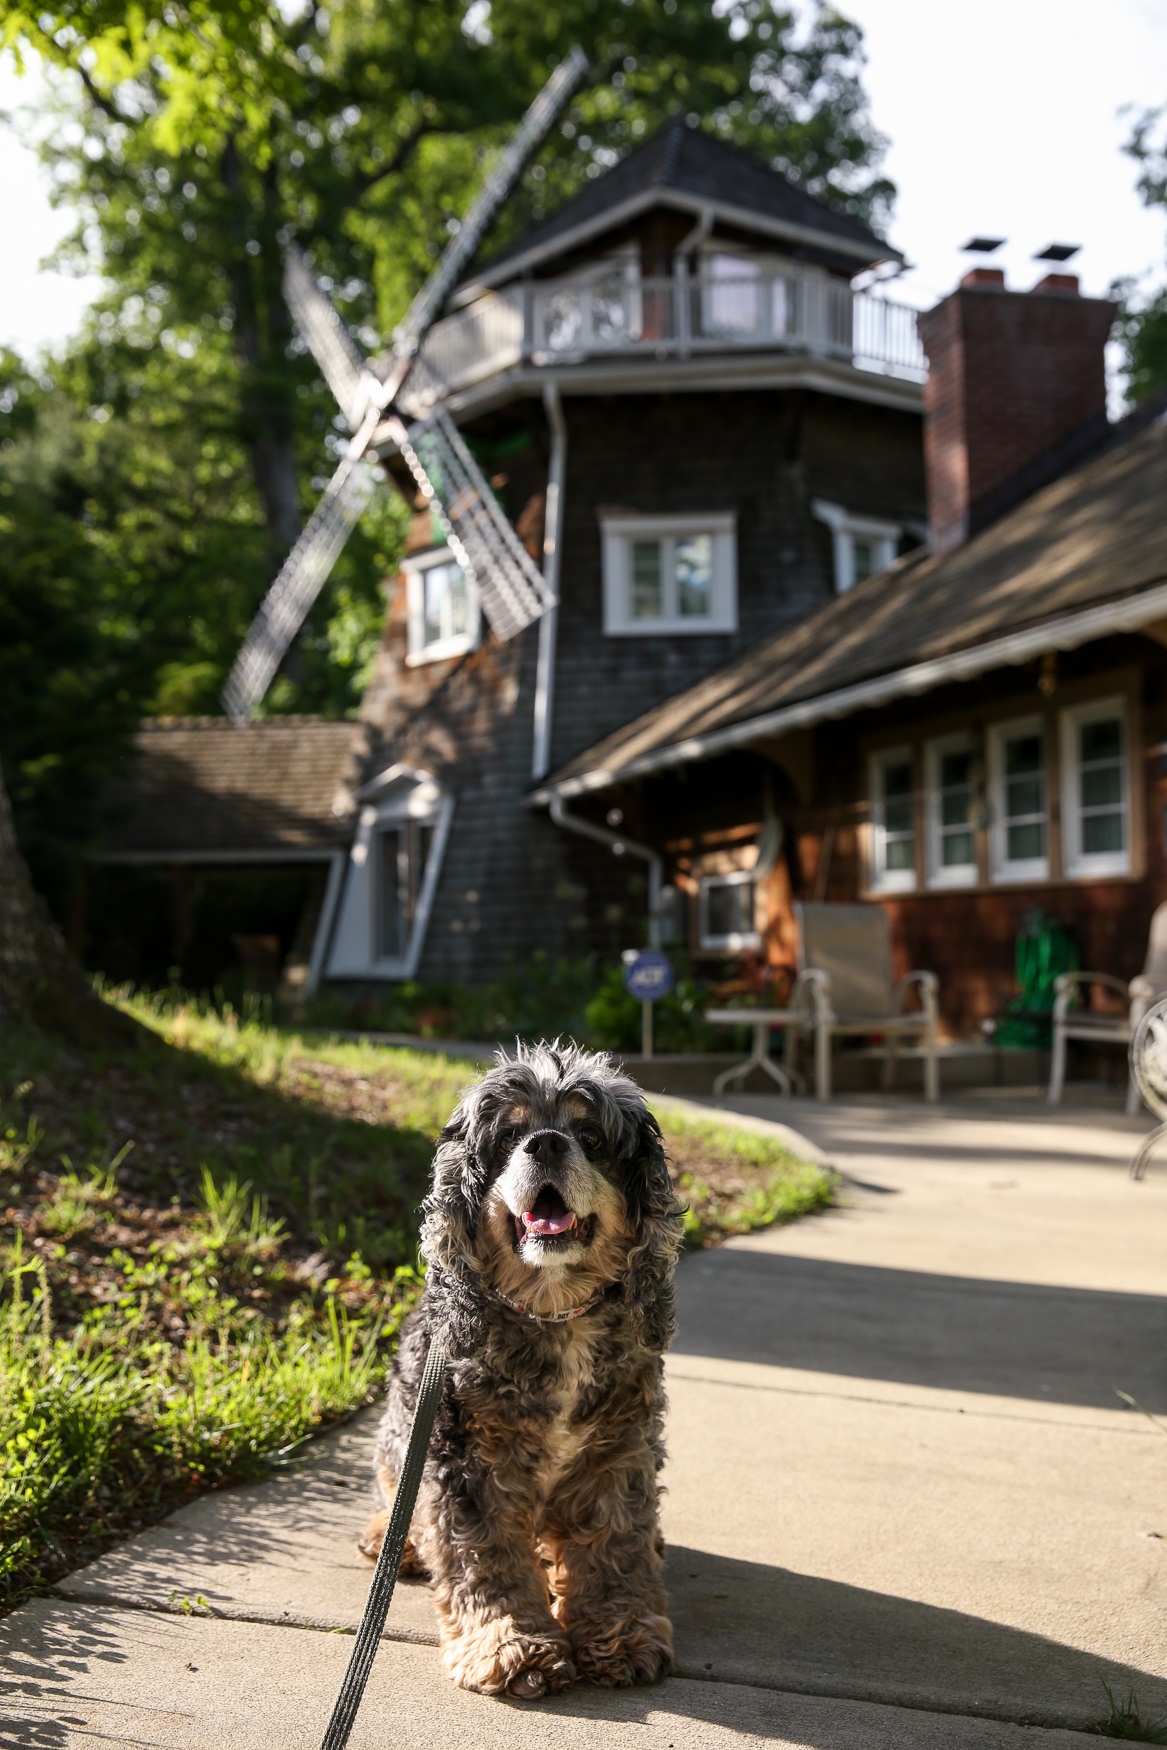 Meet Jensen, a 12.5-year-old Cocker Spaniel. Jensen was adopted from Lucky Dog in Dec. 2009; he will be celebrating his 10th adoptaversary (and 13th birthday) in December. Jensen loves all food (though he's currently o{ } a strict diet) and the very first toy his mom ever got him, Loofie; he still runs around the house with Loofie in his mouth every evening. Although he's now retired, Jensen used to love running agility at Capital Dog Training Club. But his real joy in life, and one of his mom's favorite memories with him, is when he gets to go to{ }C&O Canal and dig in the sand. If you're interested in having your pup featured, drop us a line at aandrade@dcrefined.com, but we do have quite the waiting list right now so we appreciate your patience! (Image: Amanda Andrade-Rhoades/DC Refined)